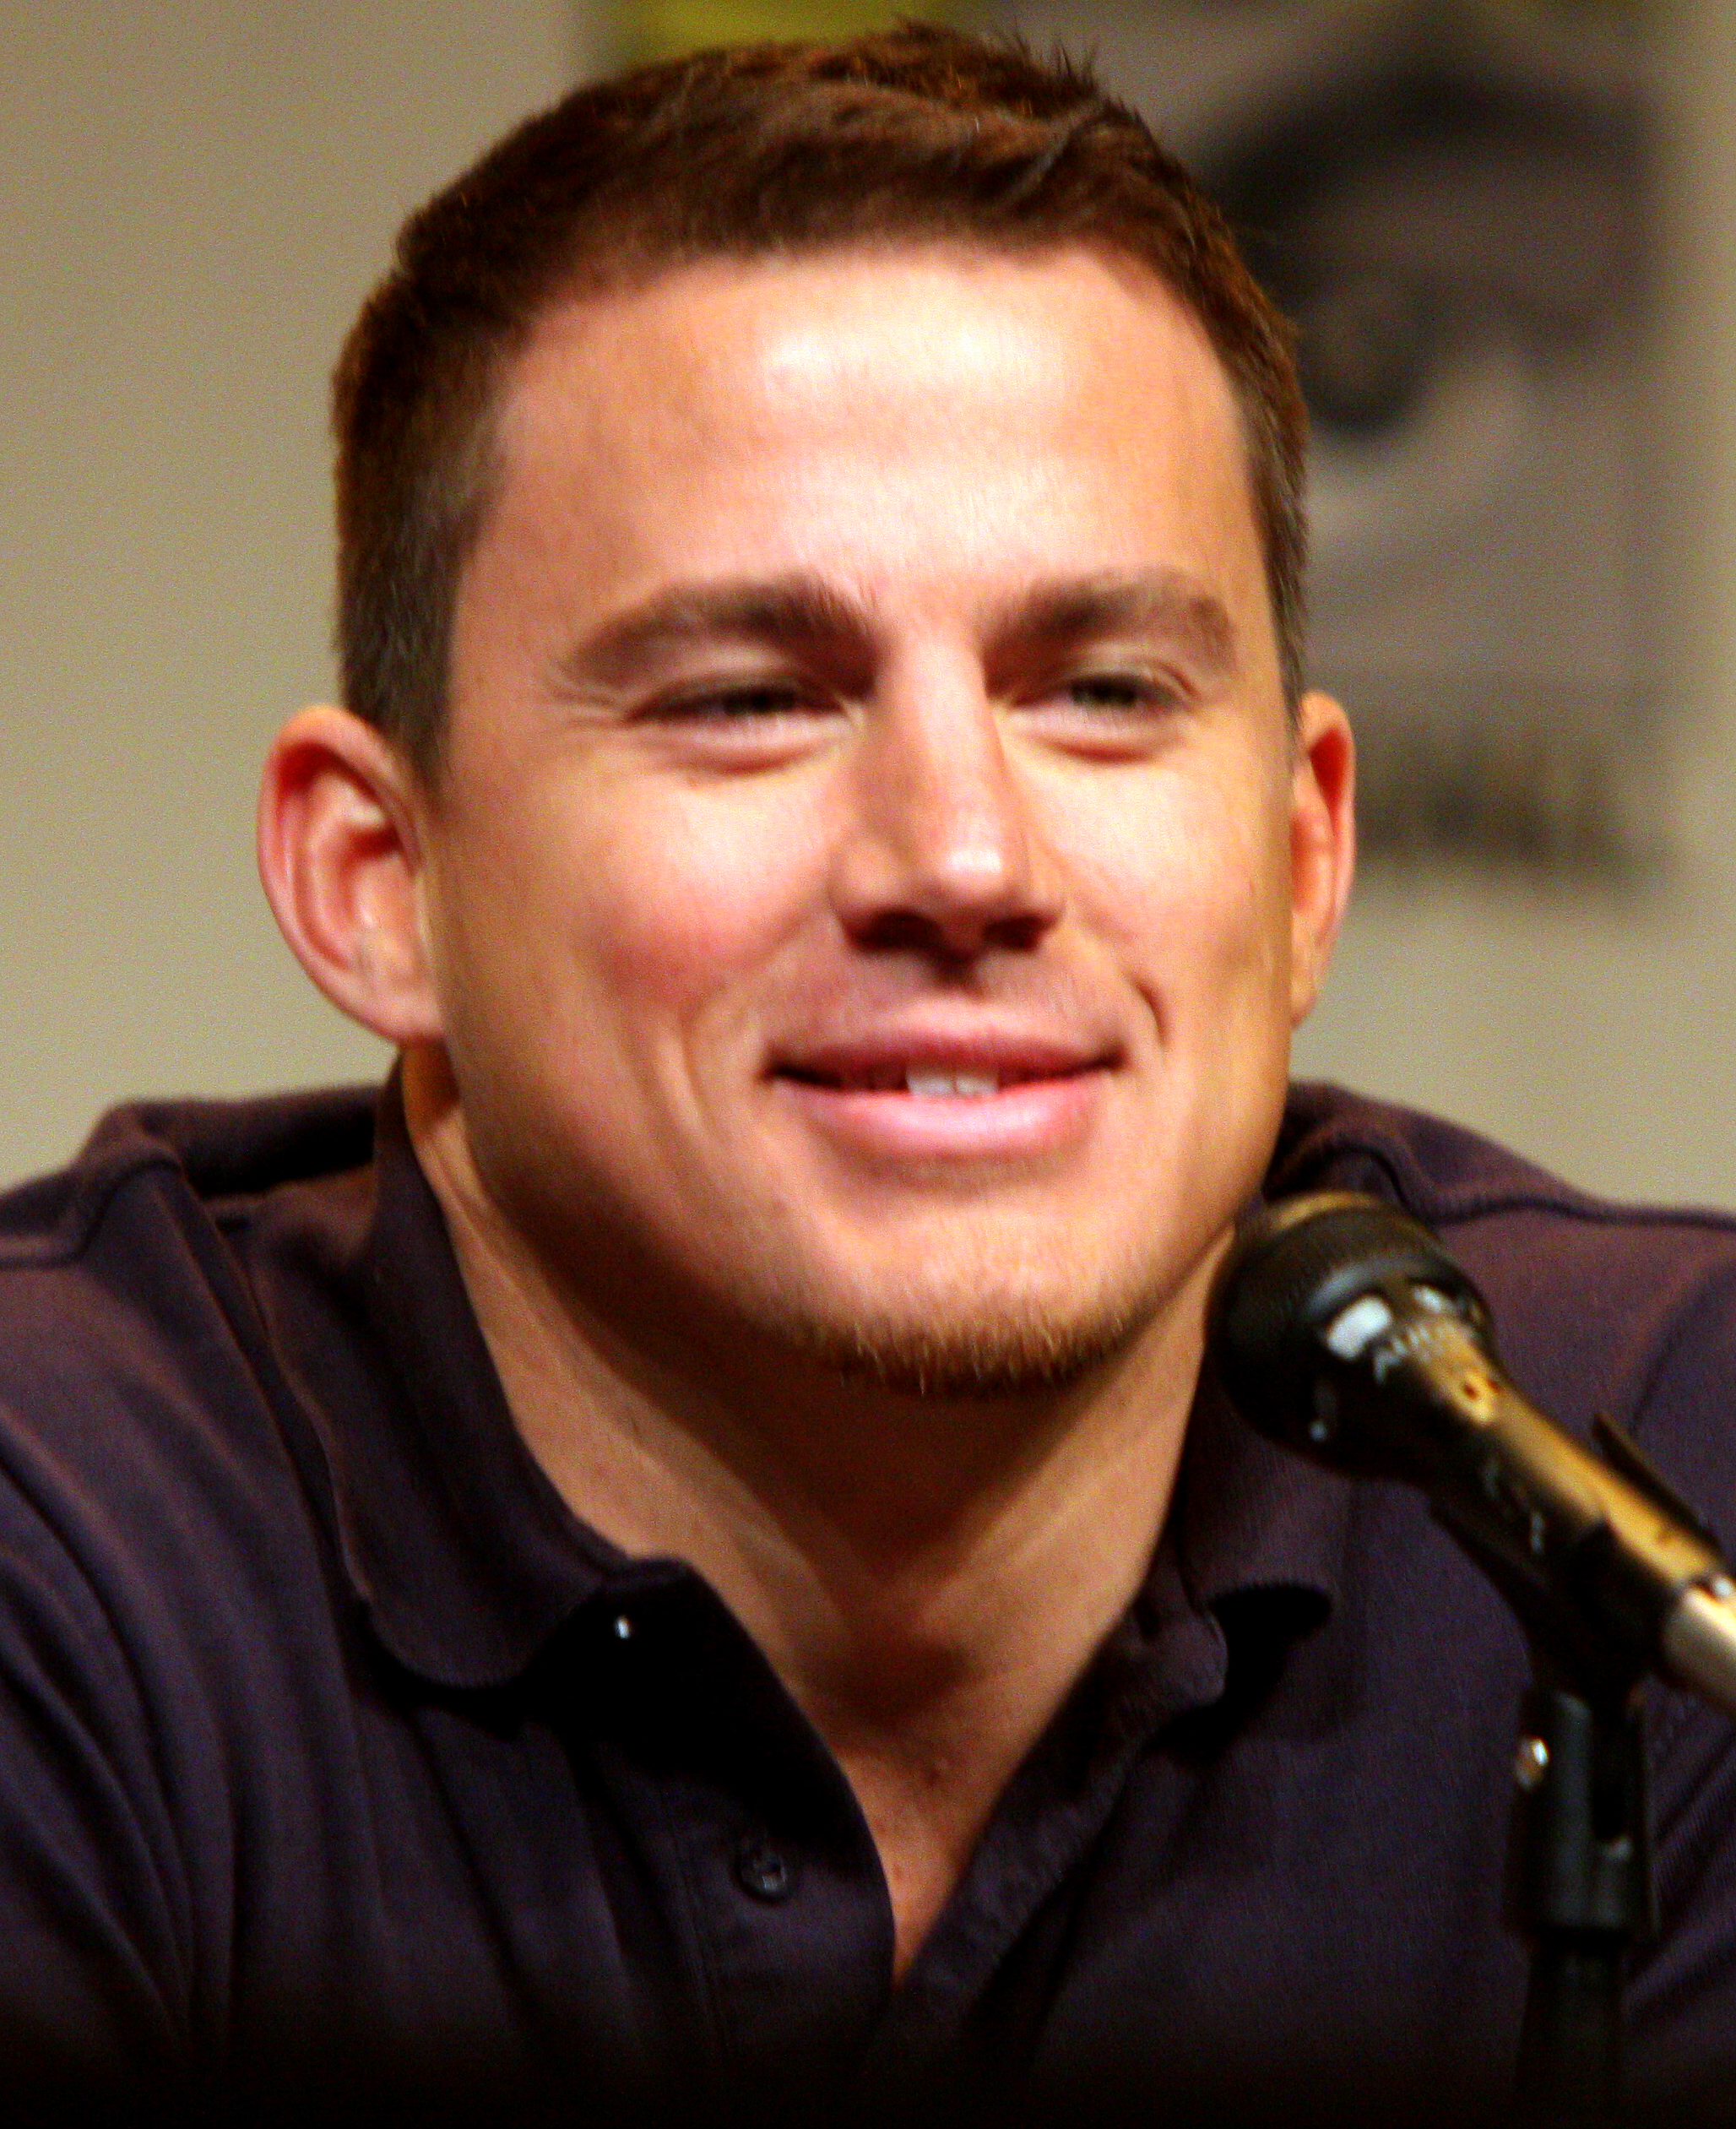 By Gage Skidmore (Channing Tatum) [CC-BY-SA-2.0 (http://creativecommons.org/licenses/by-sa/2.0)], via Wikimedia Commons